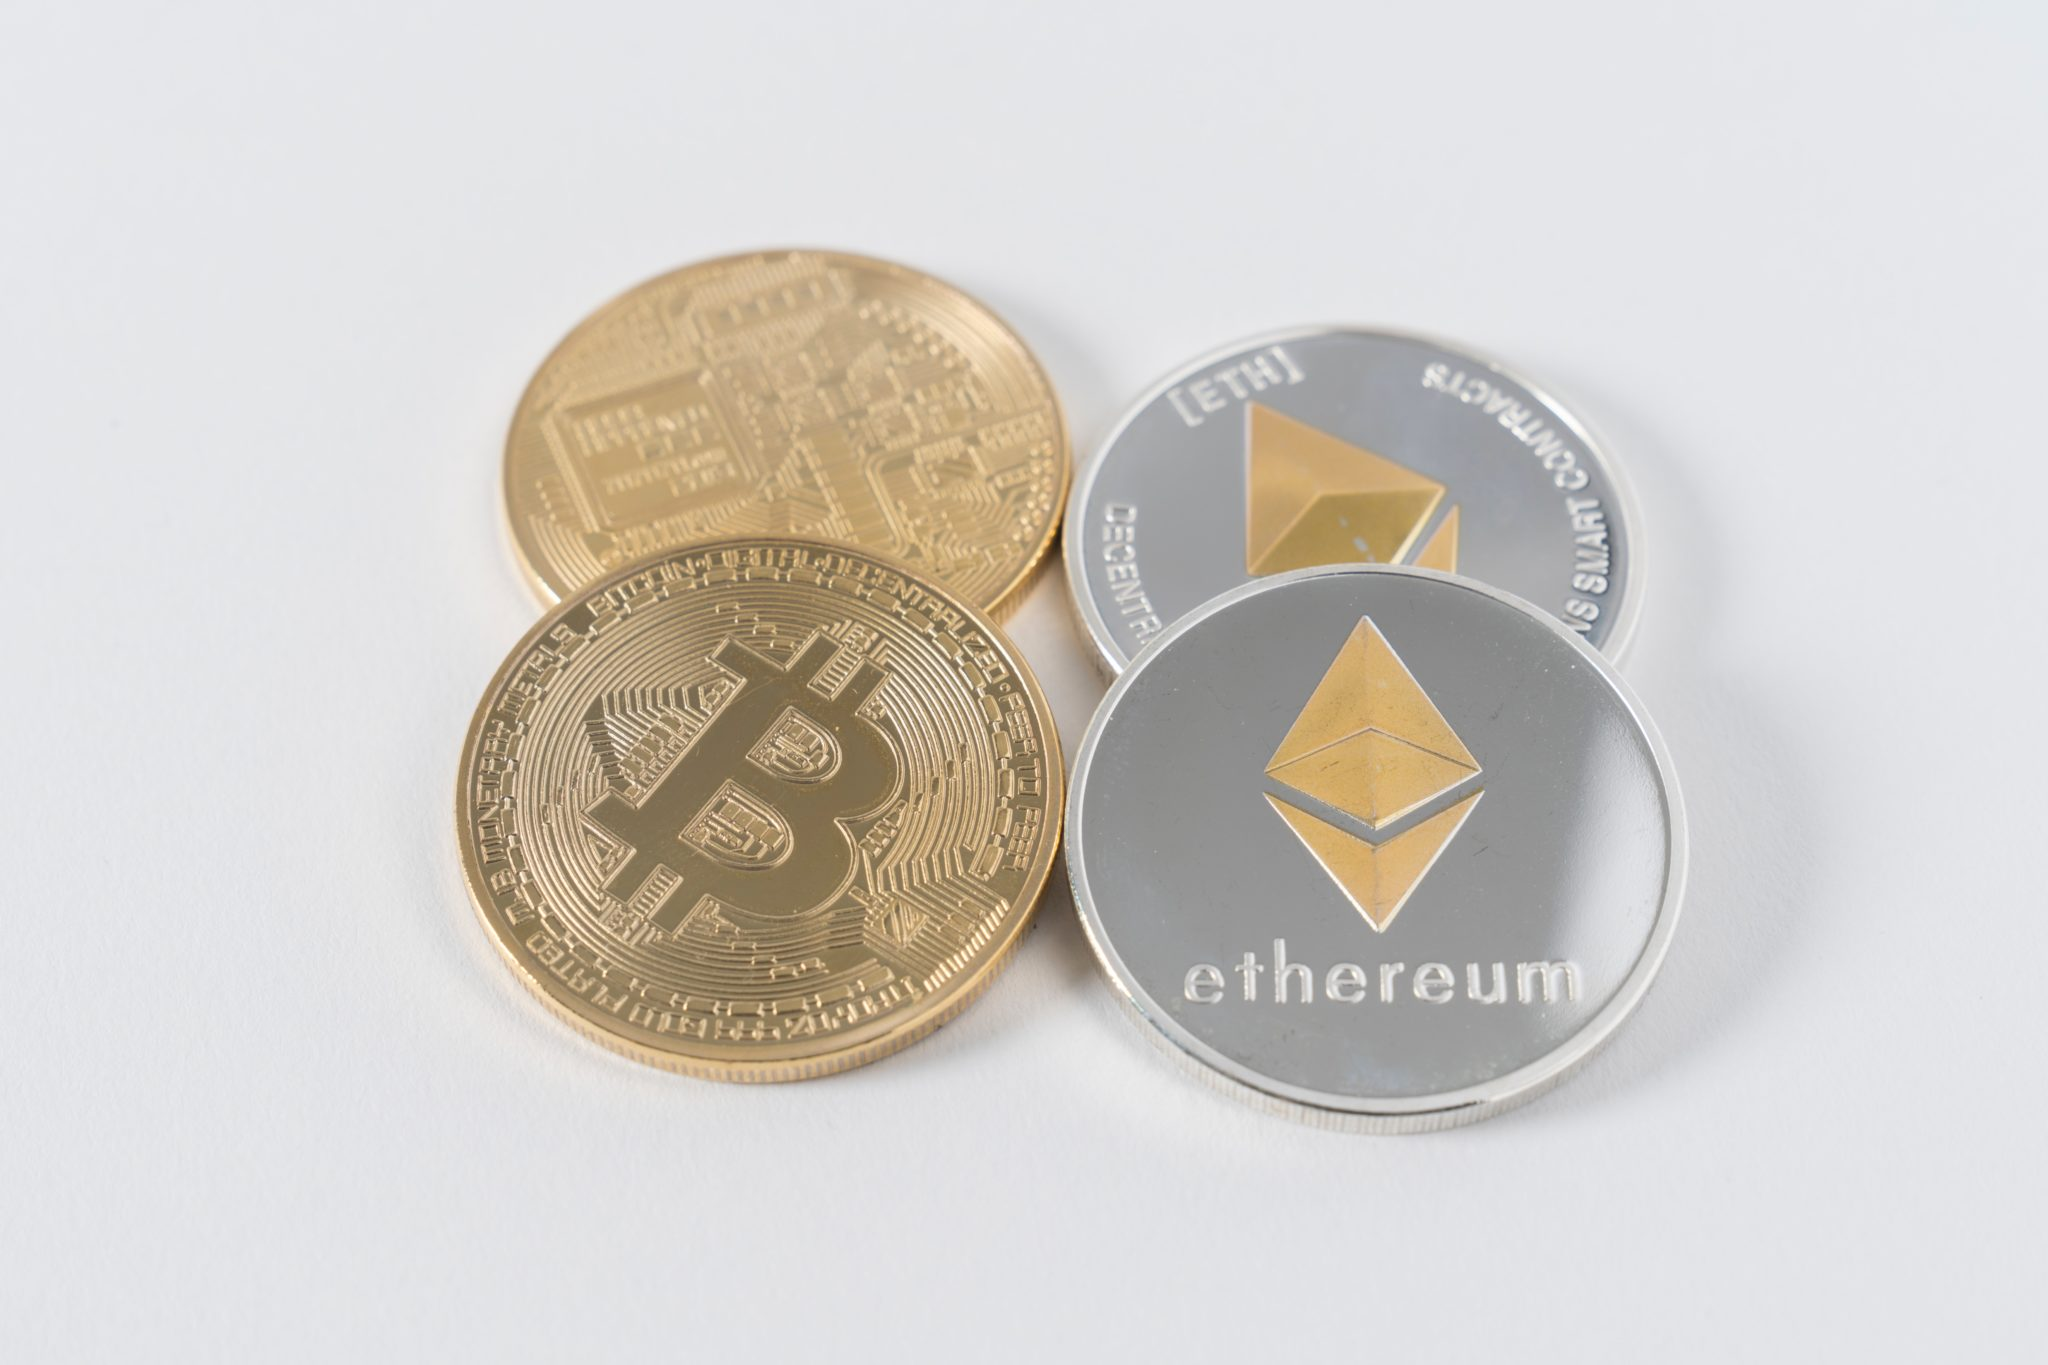 Cryptocurrency coins stacked together